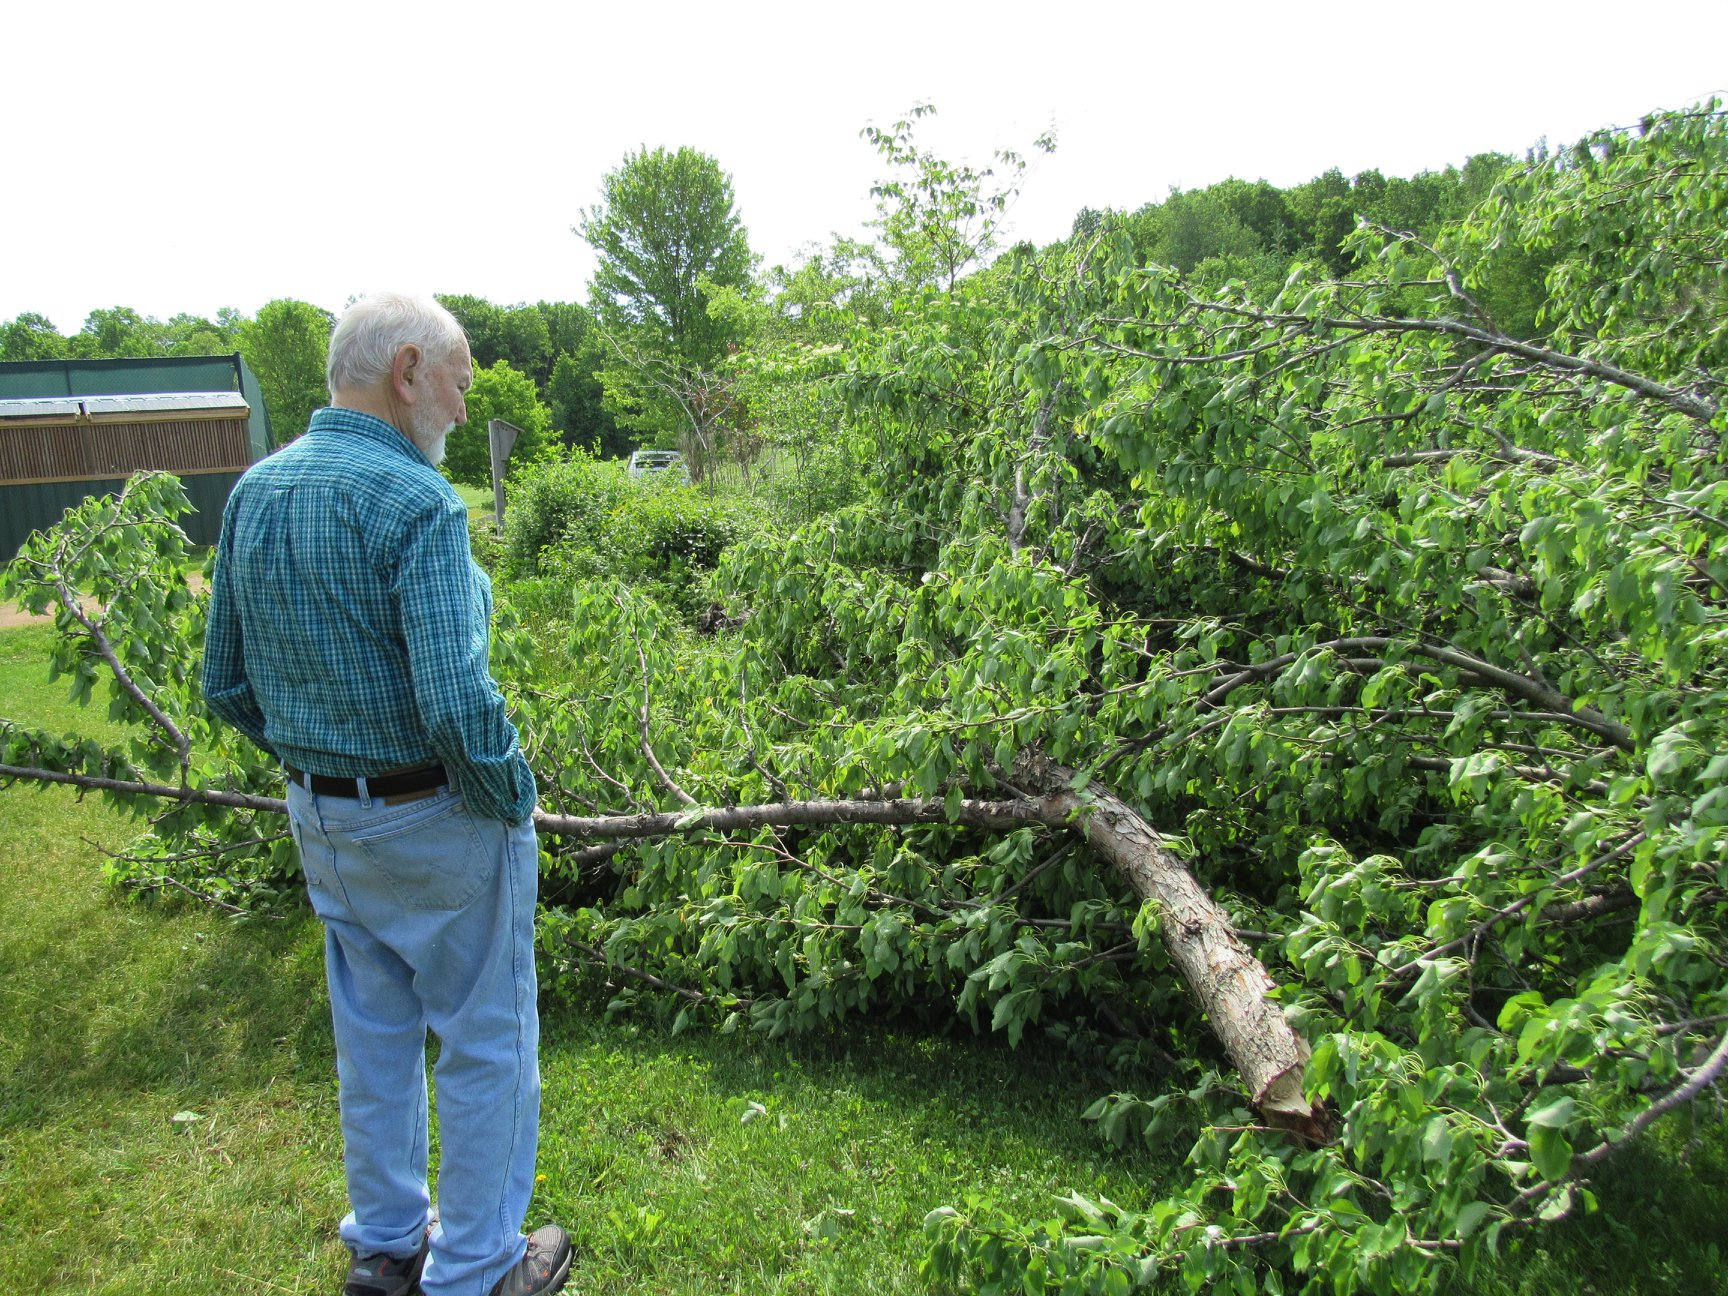 The pear tree was blown apart. We are stunned at the powerful winds that caused its demise.